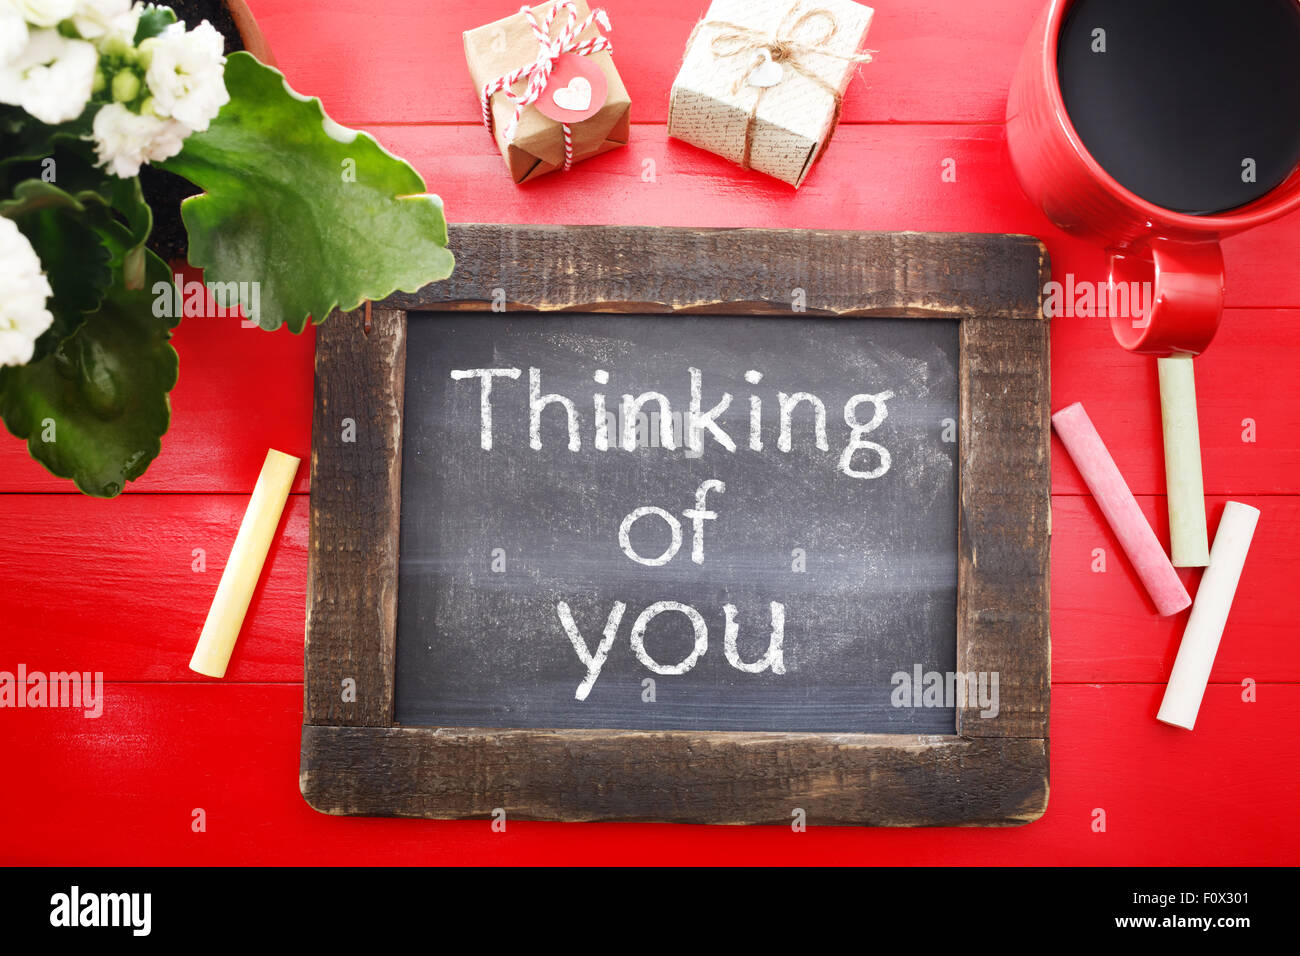 Thinking of You message written on a little chalkboard on a red wooden board - Stock Image